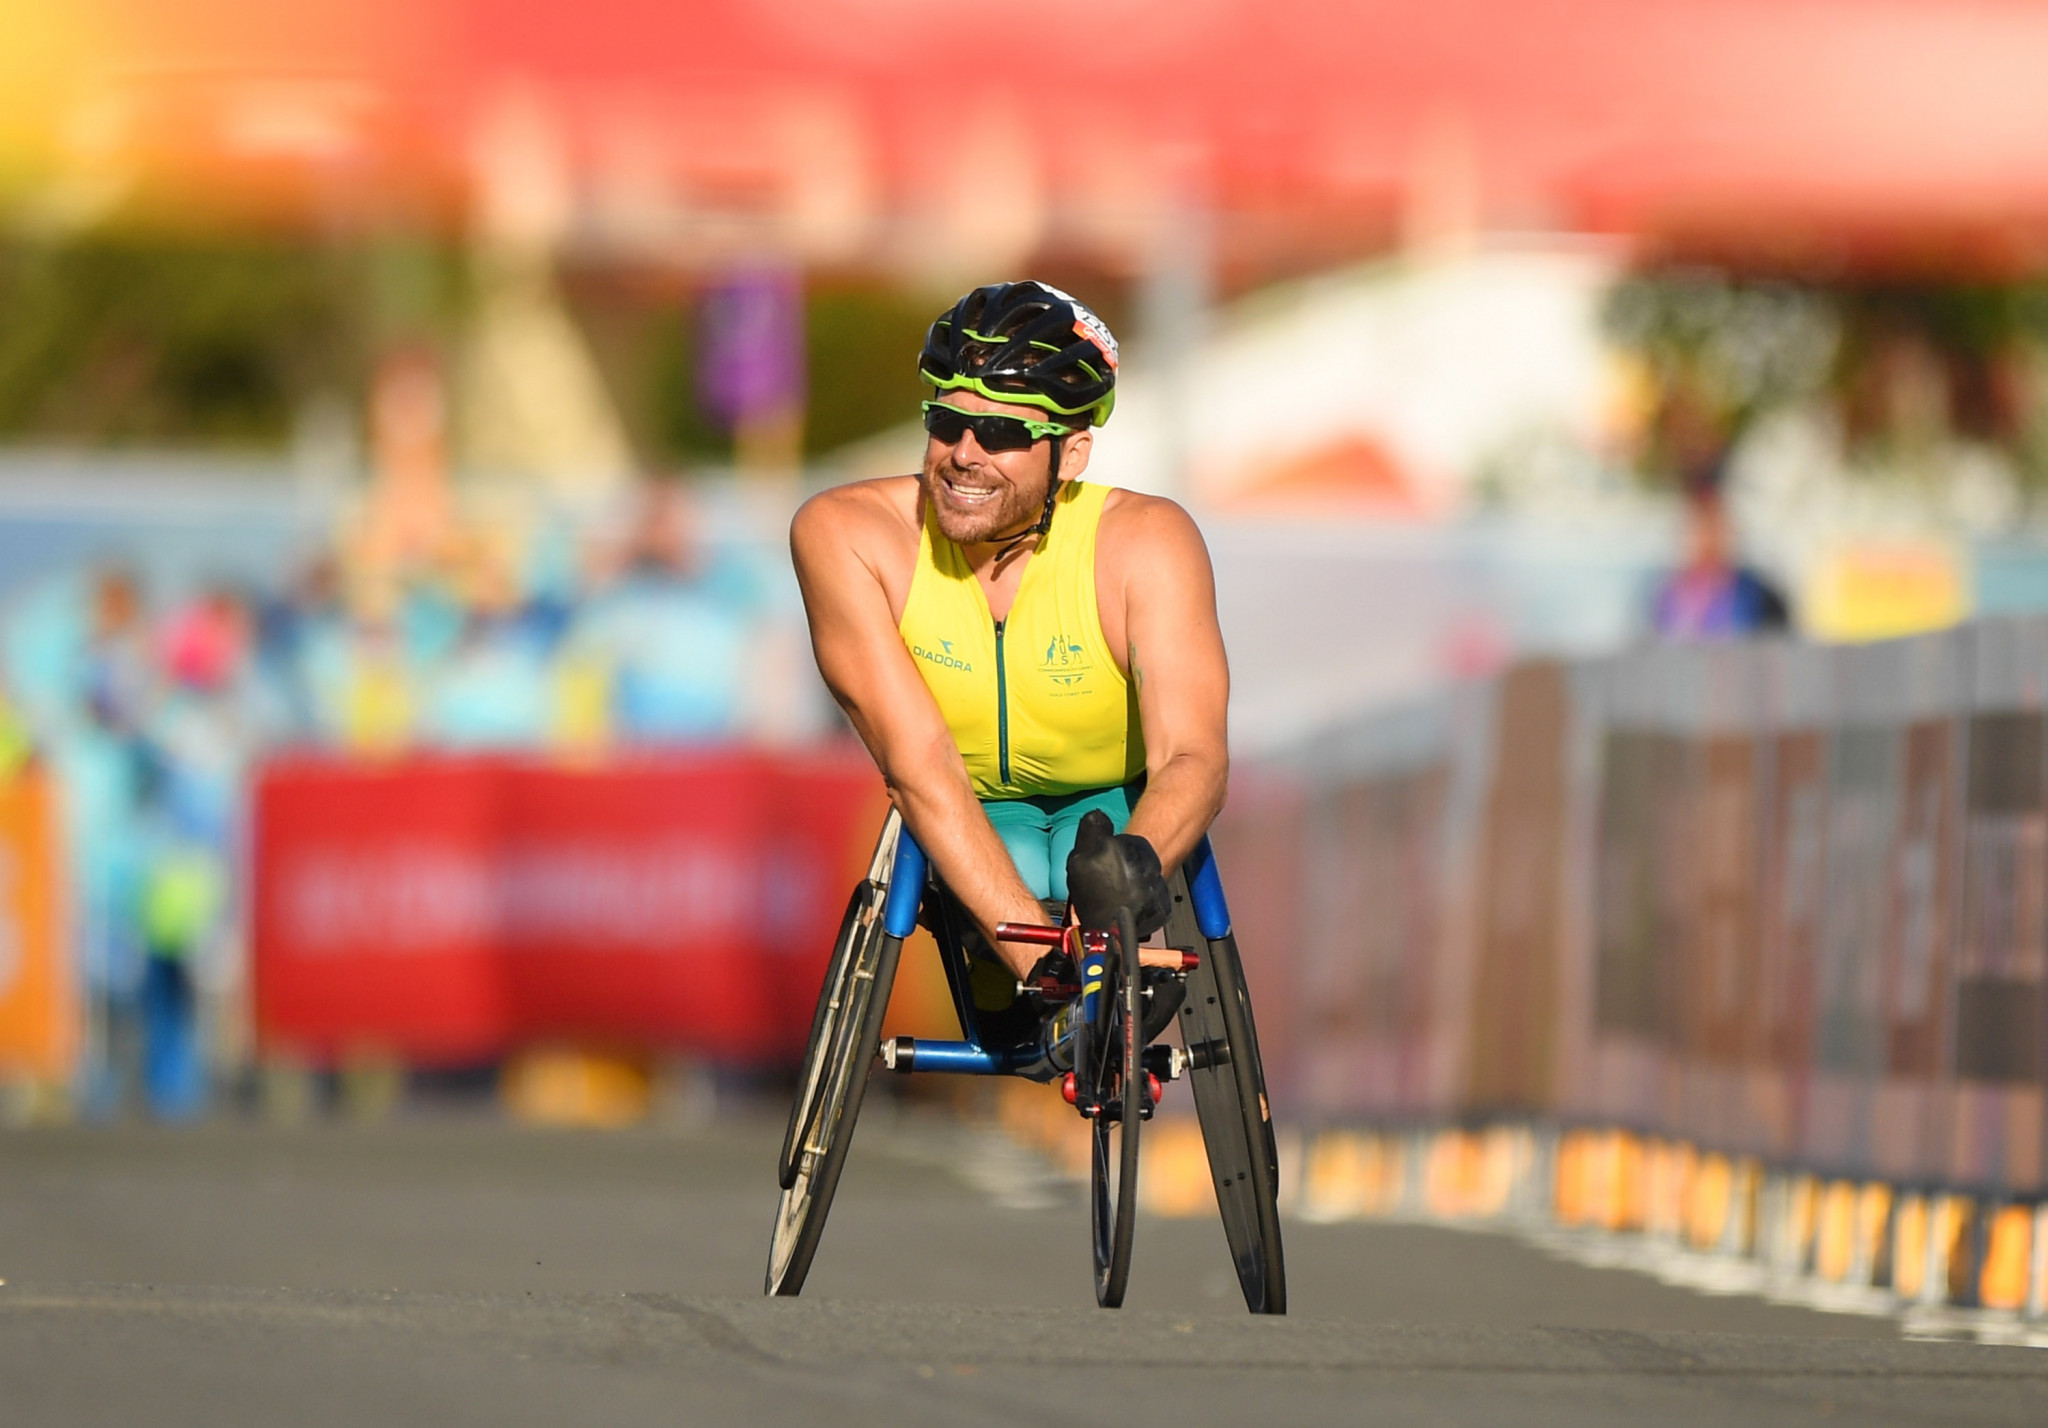 Commonwealth Games Australia presents Kurt Fearnley scholarship to six Para-sport athletes